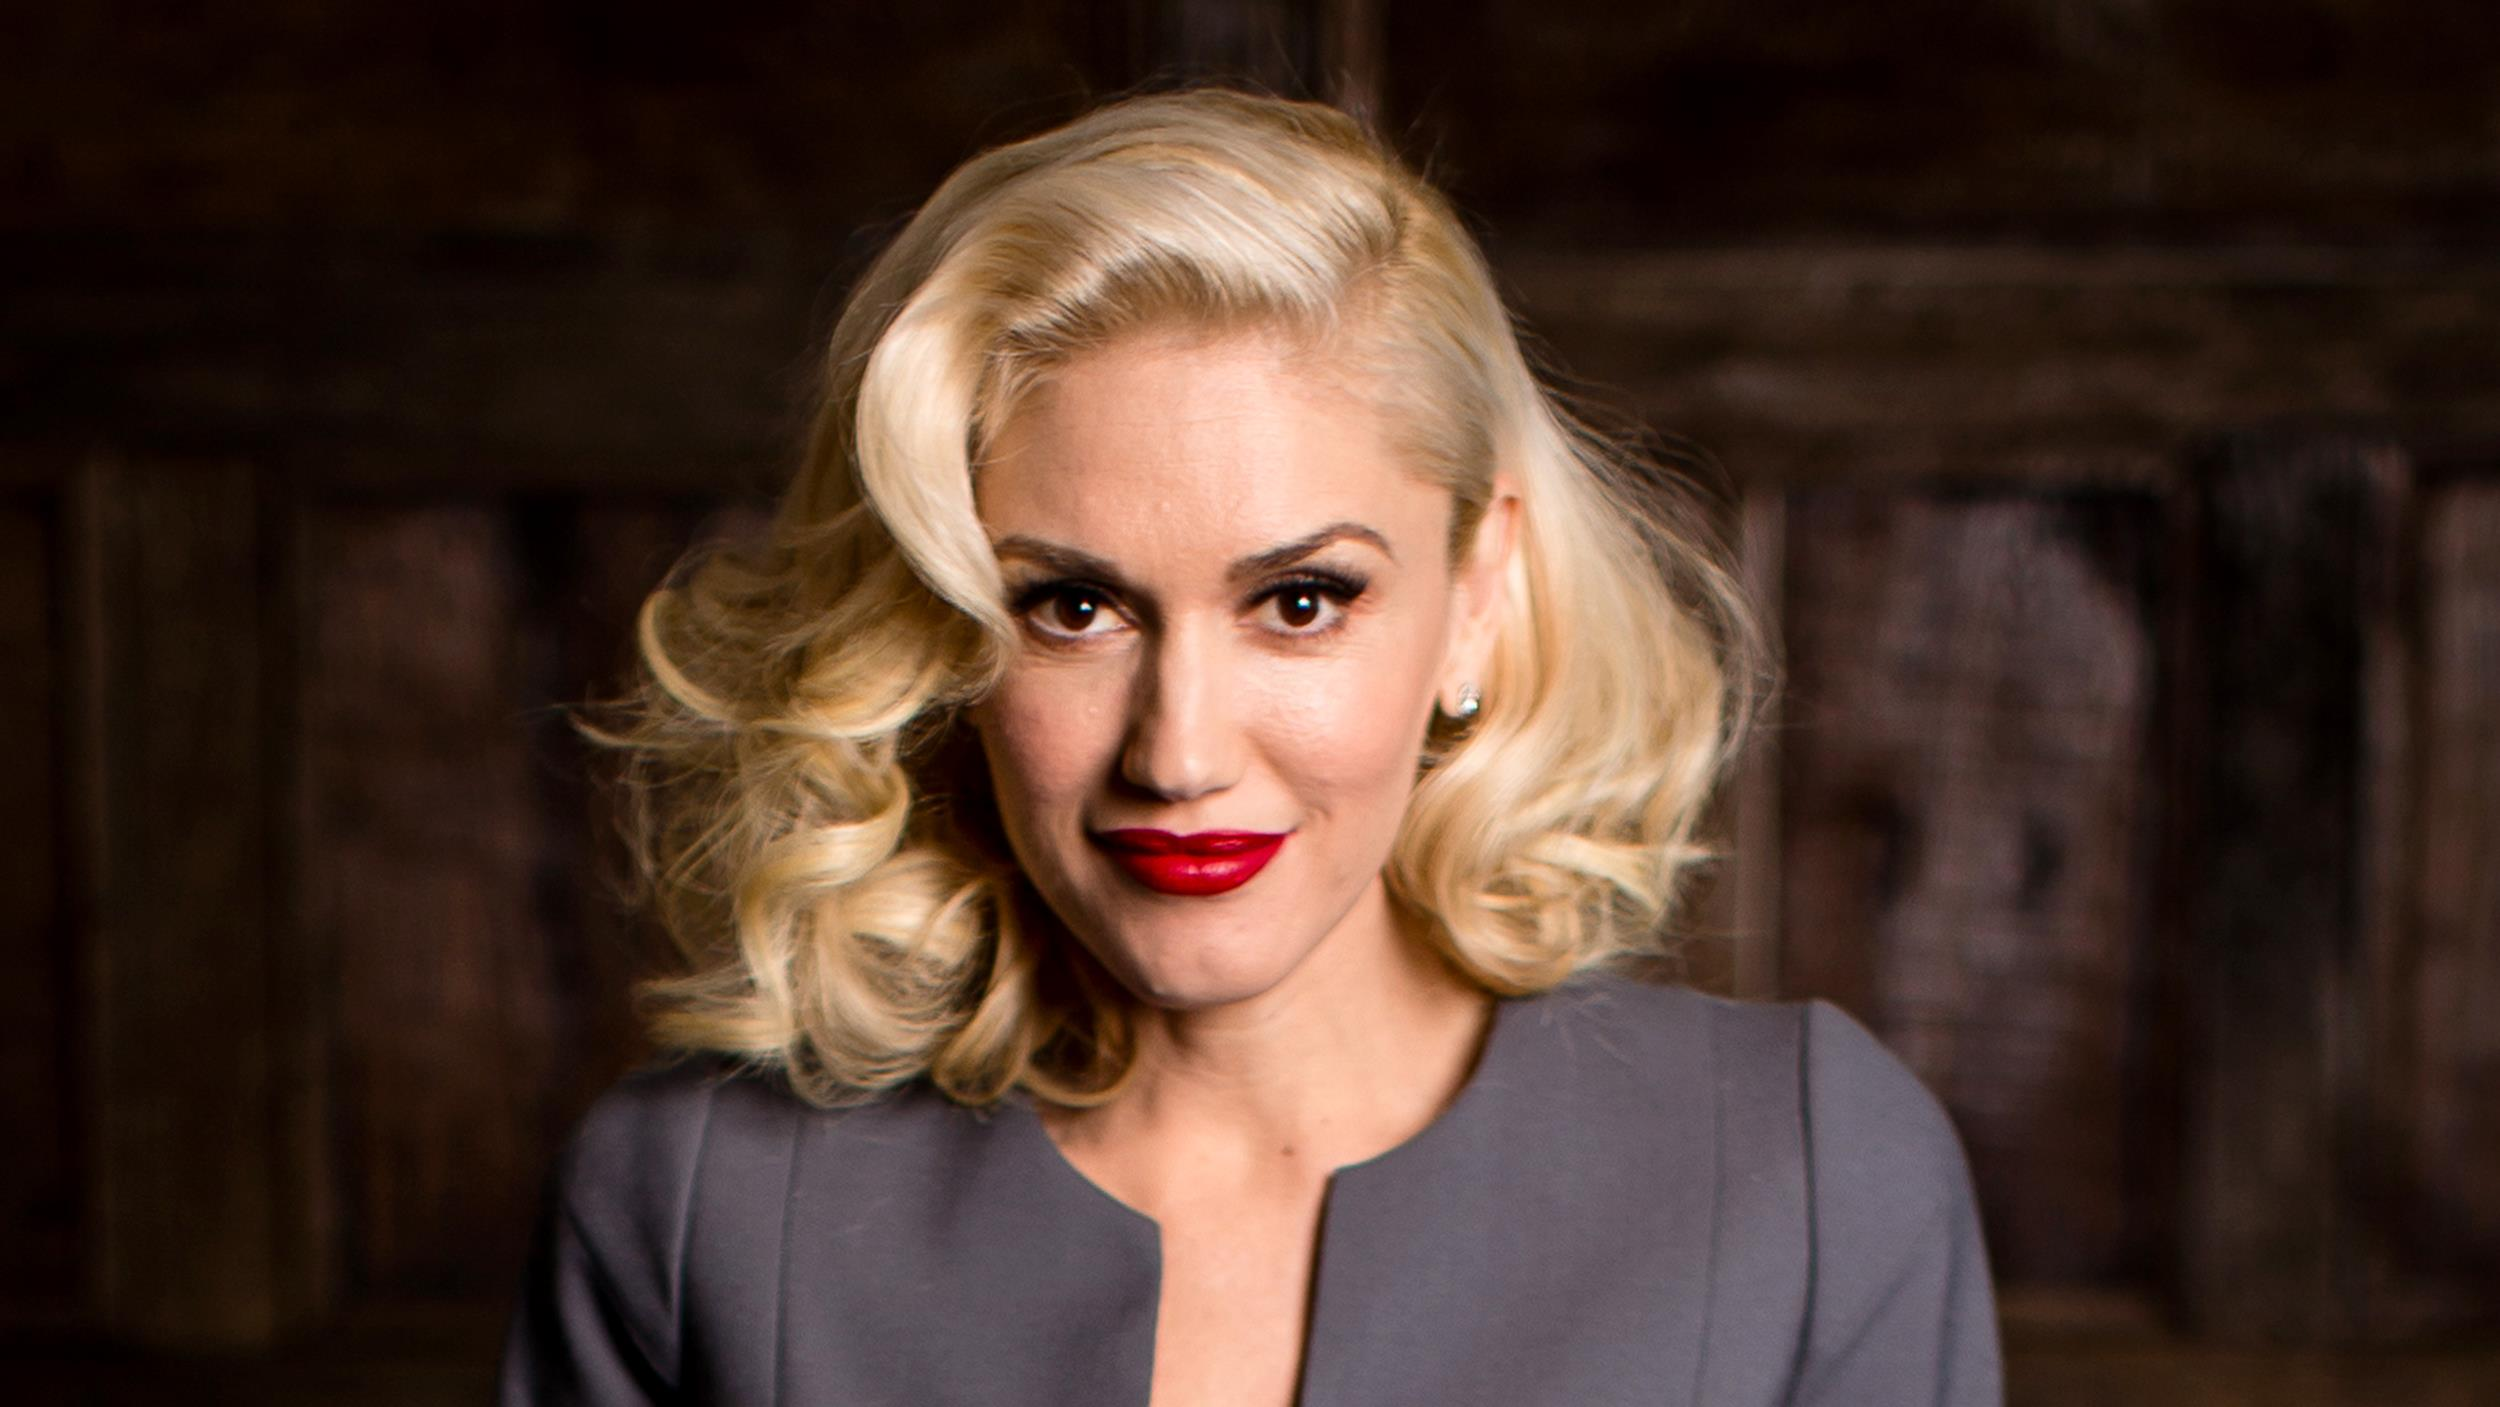 Gwen Stefani ditches red lipstick, shares makeup-free ... гвен стефани